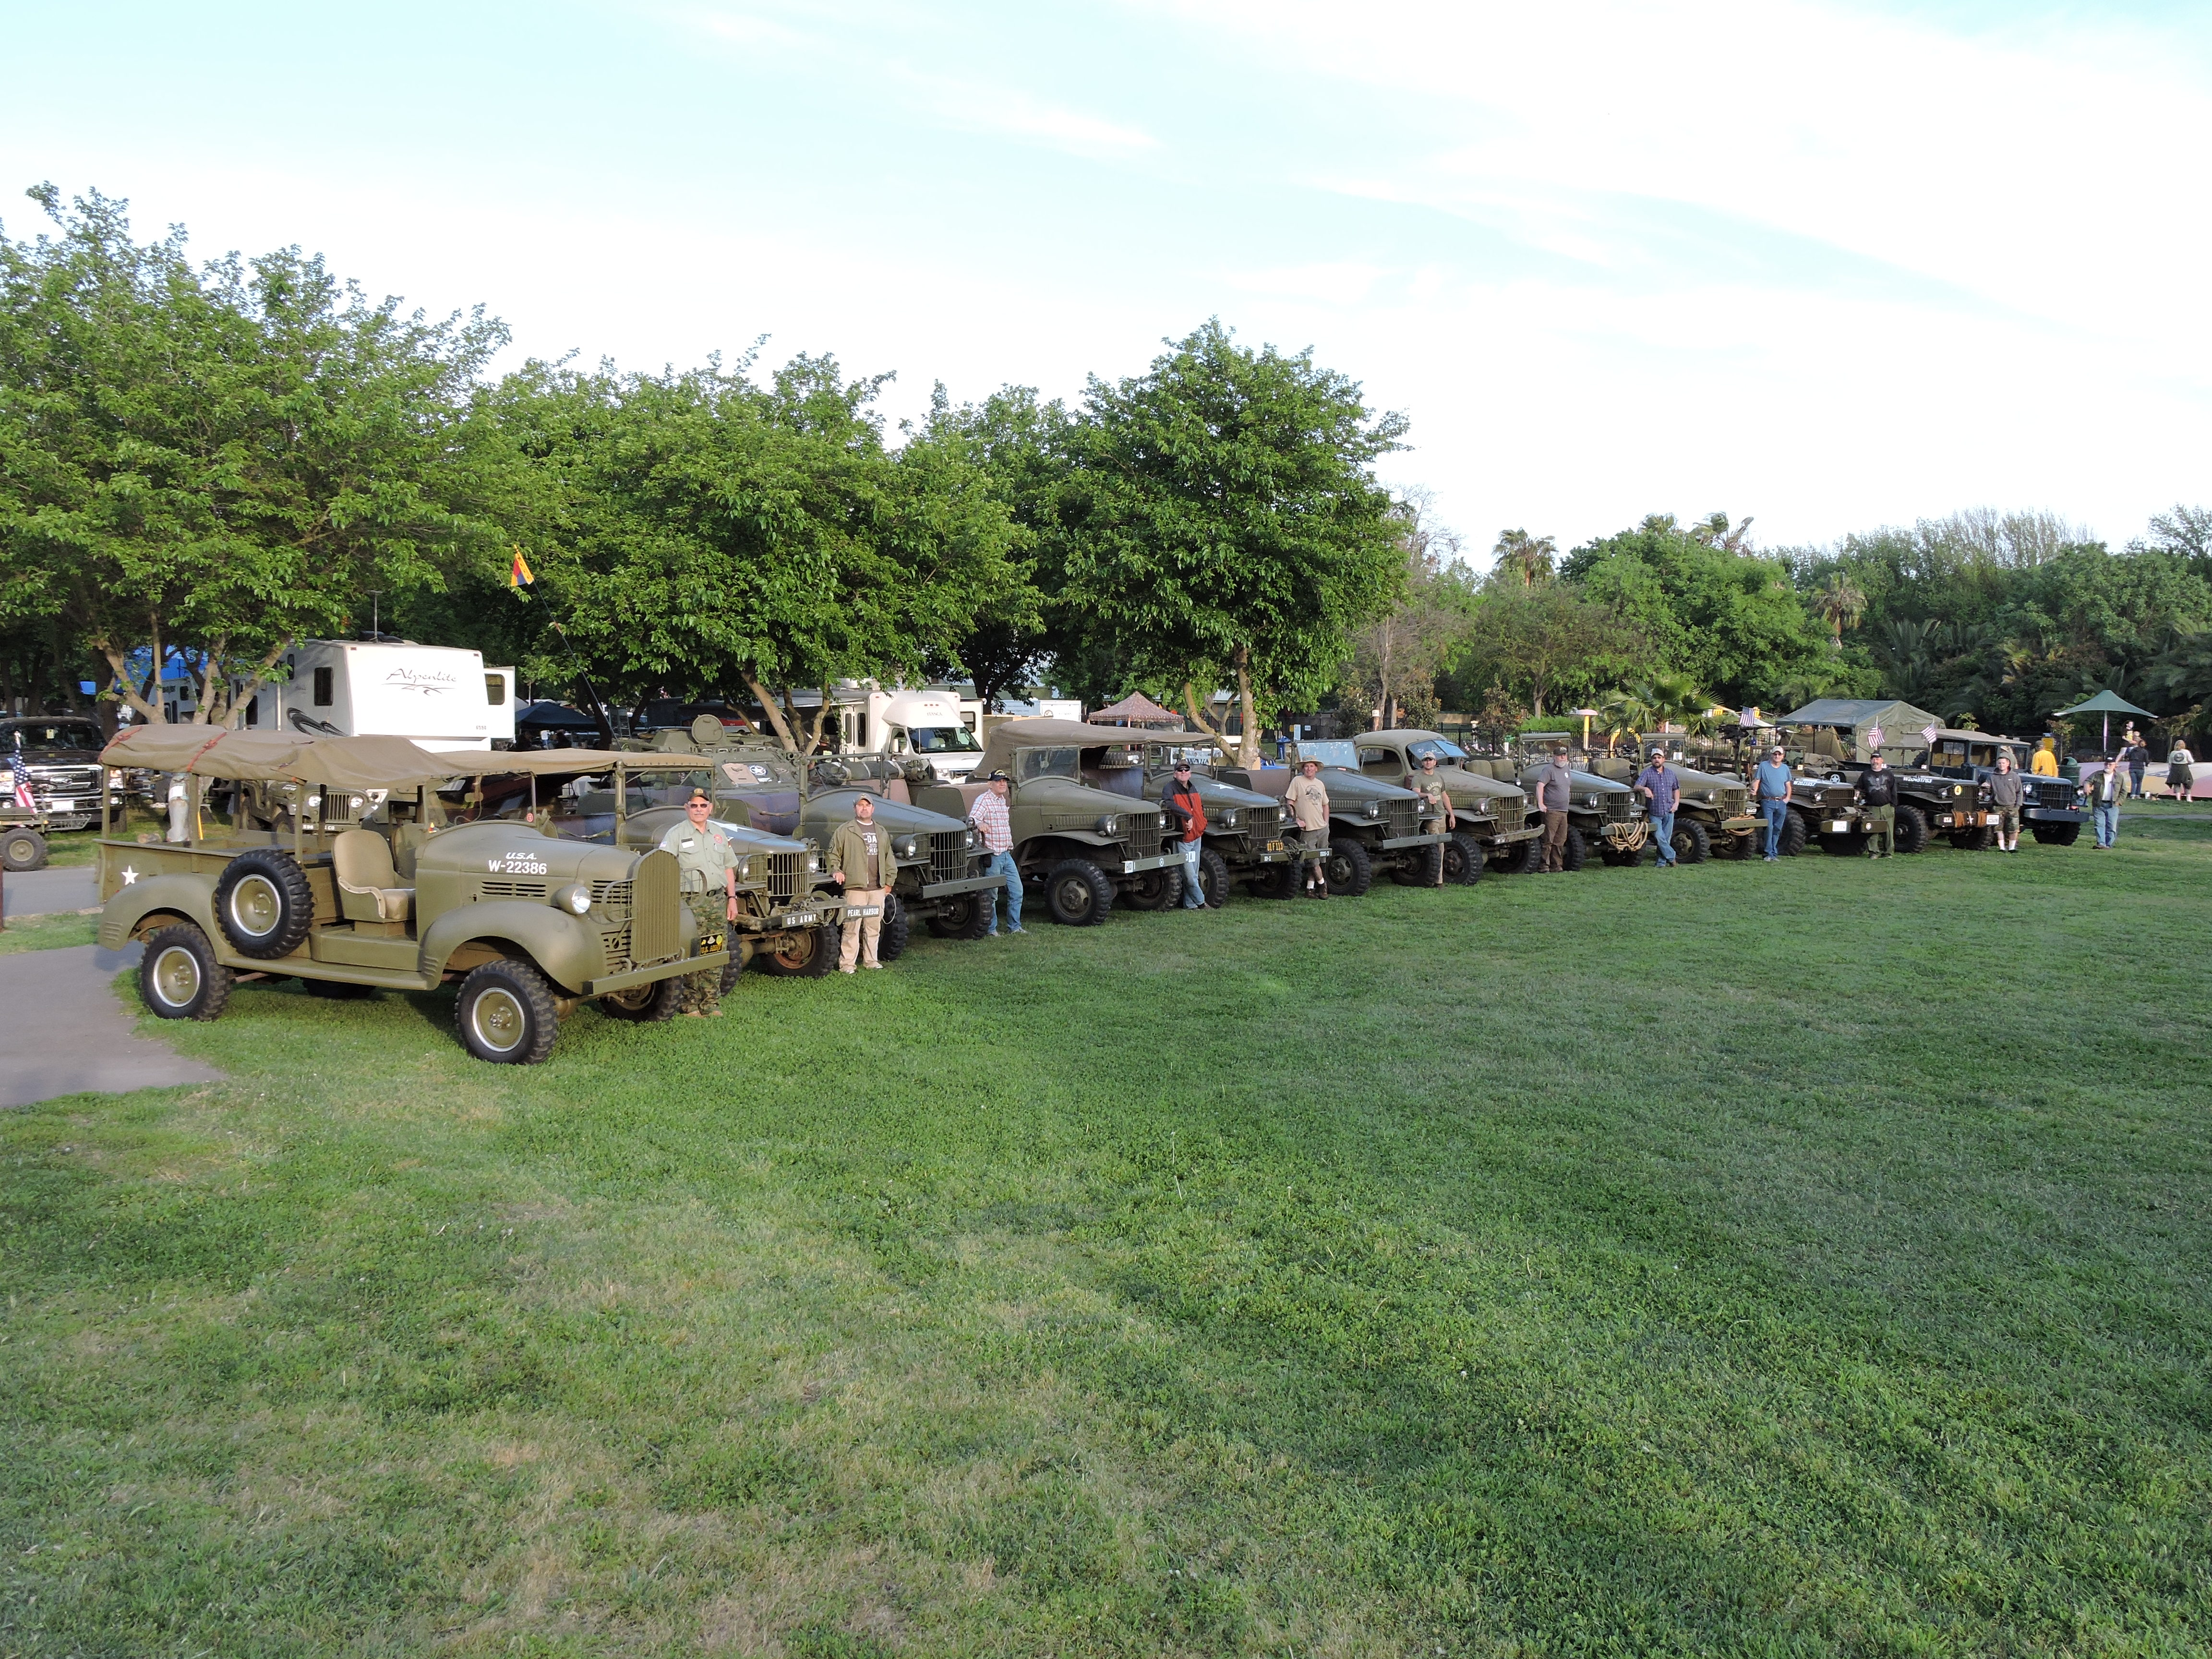 Camp Delta Military Swap Meet and Vehicle Gathering at Tower Park Resort near Lodi, California.